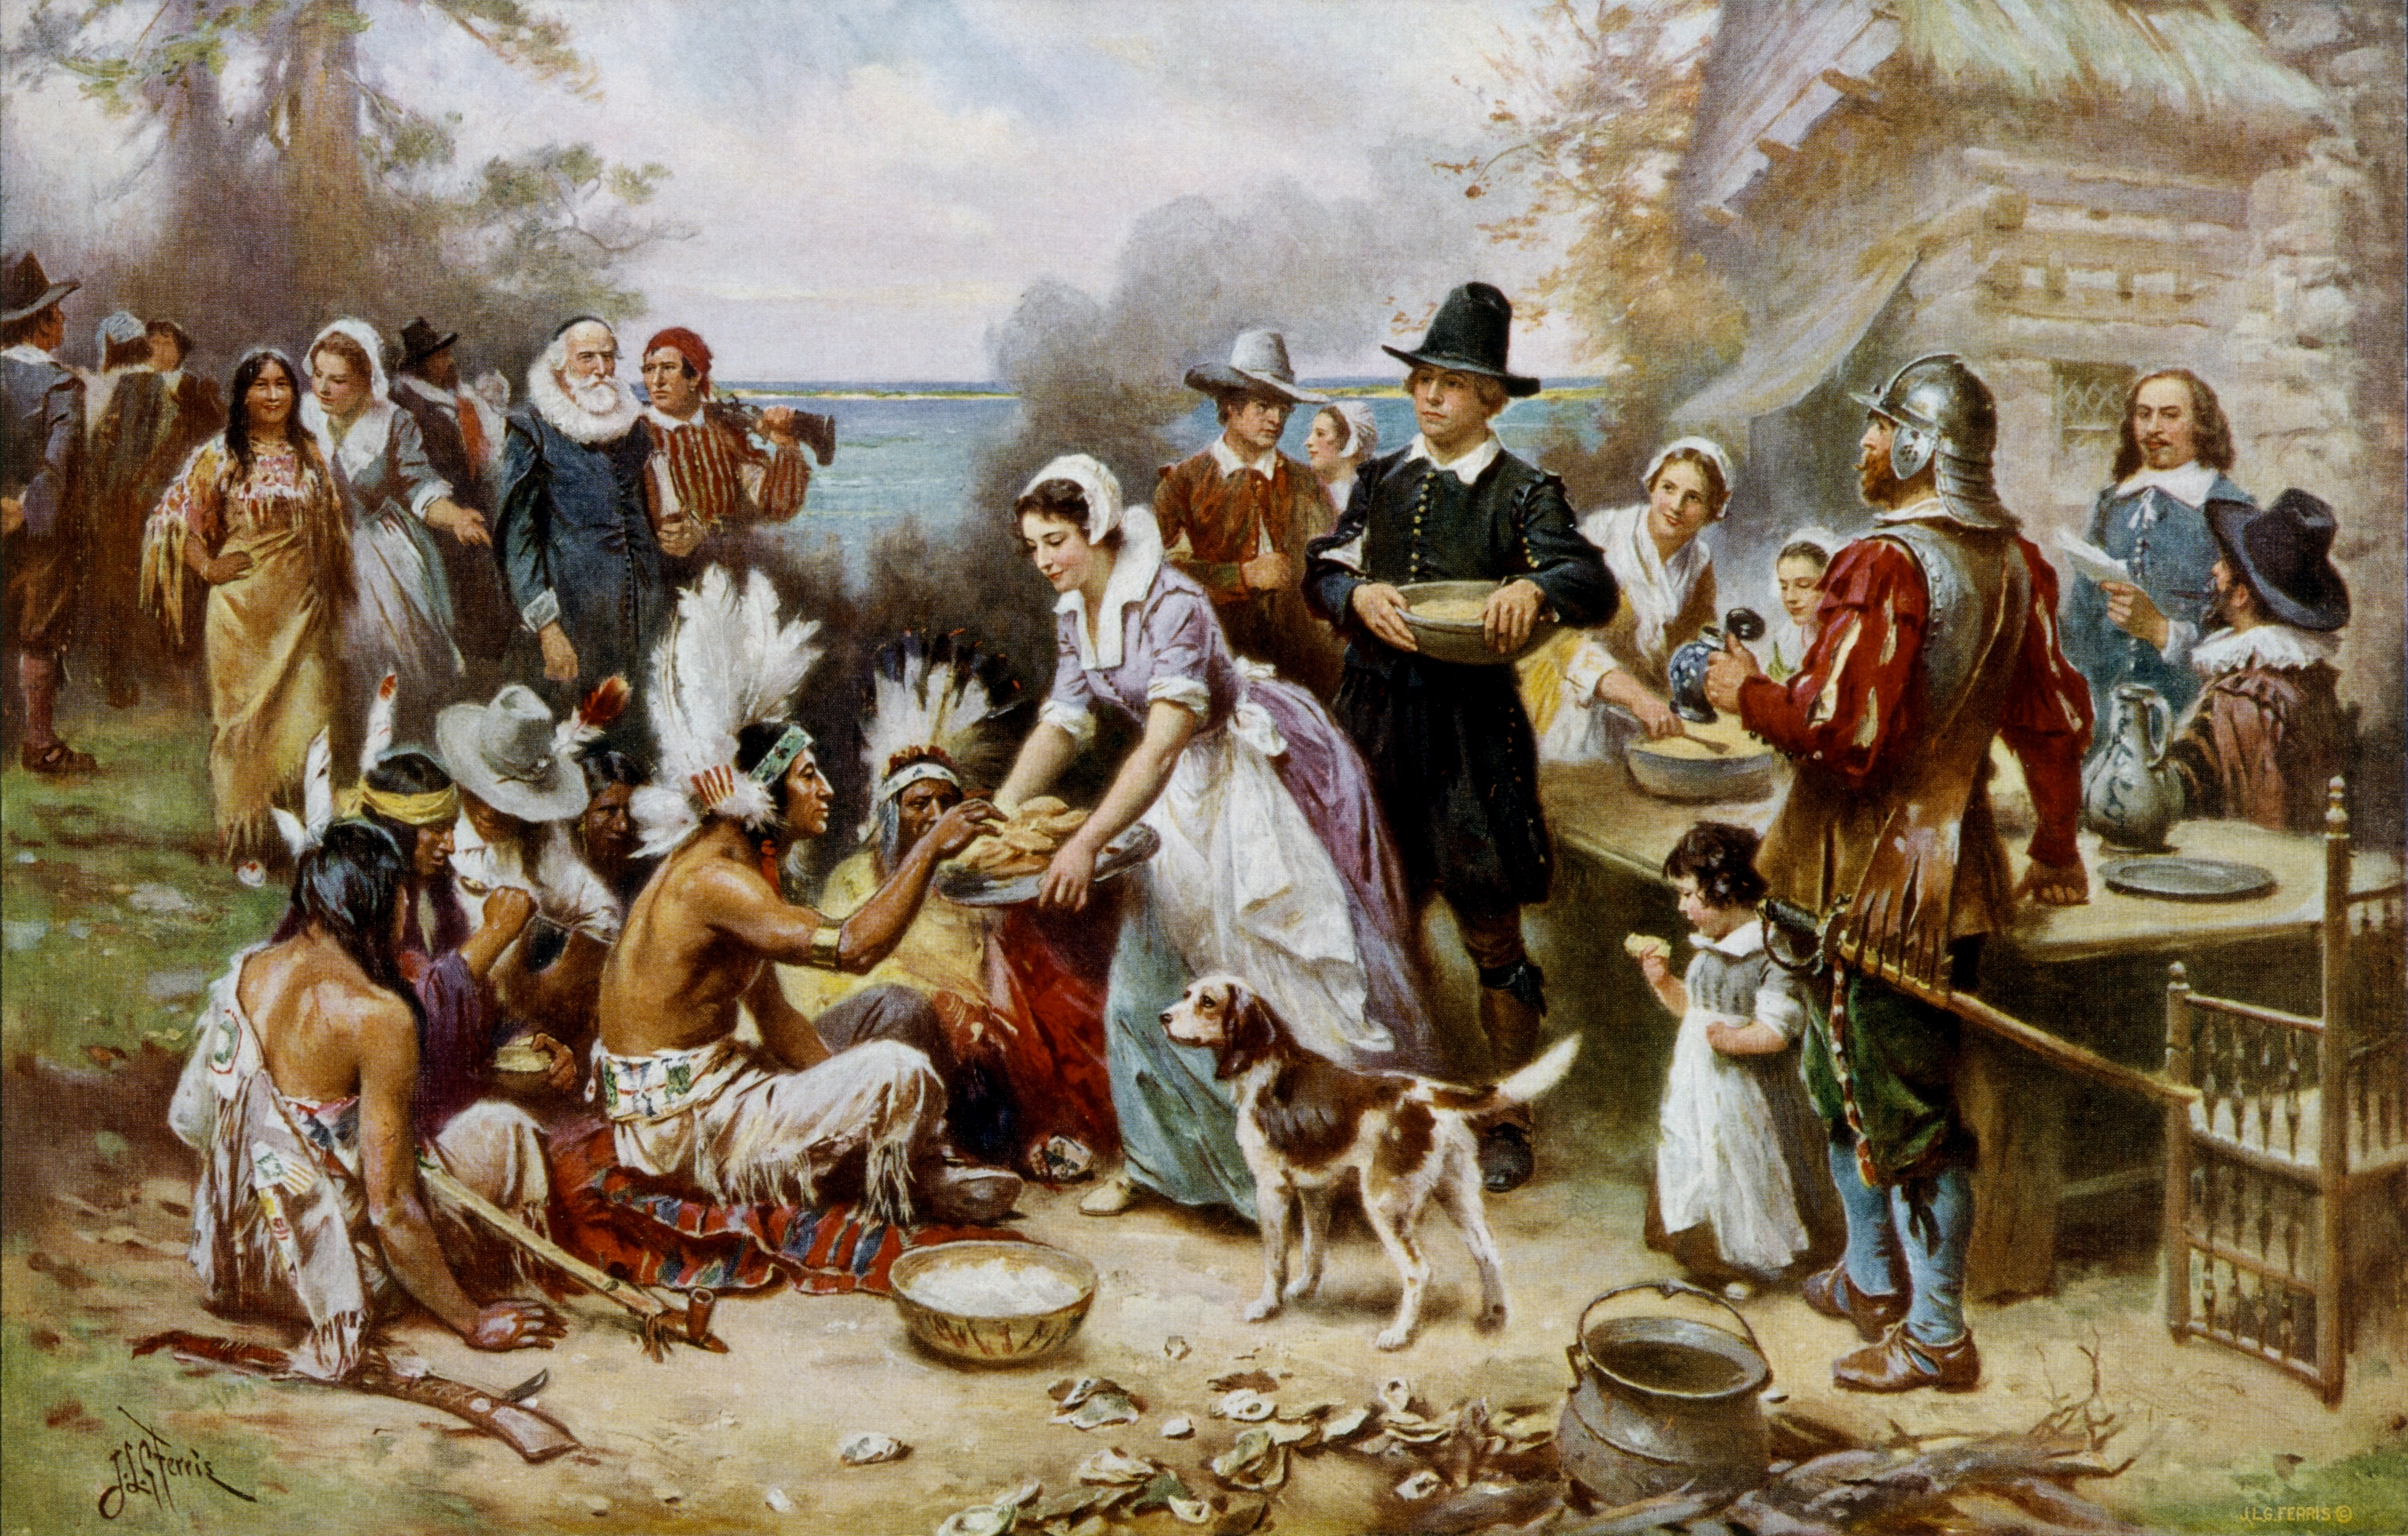 File:The First Thanksgiving cph 3g04961 jpg - Wikimedia Commons